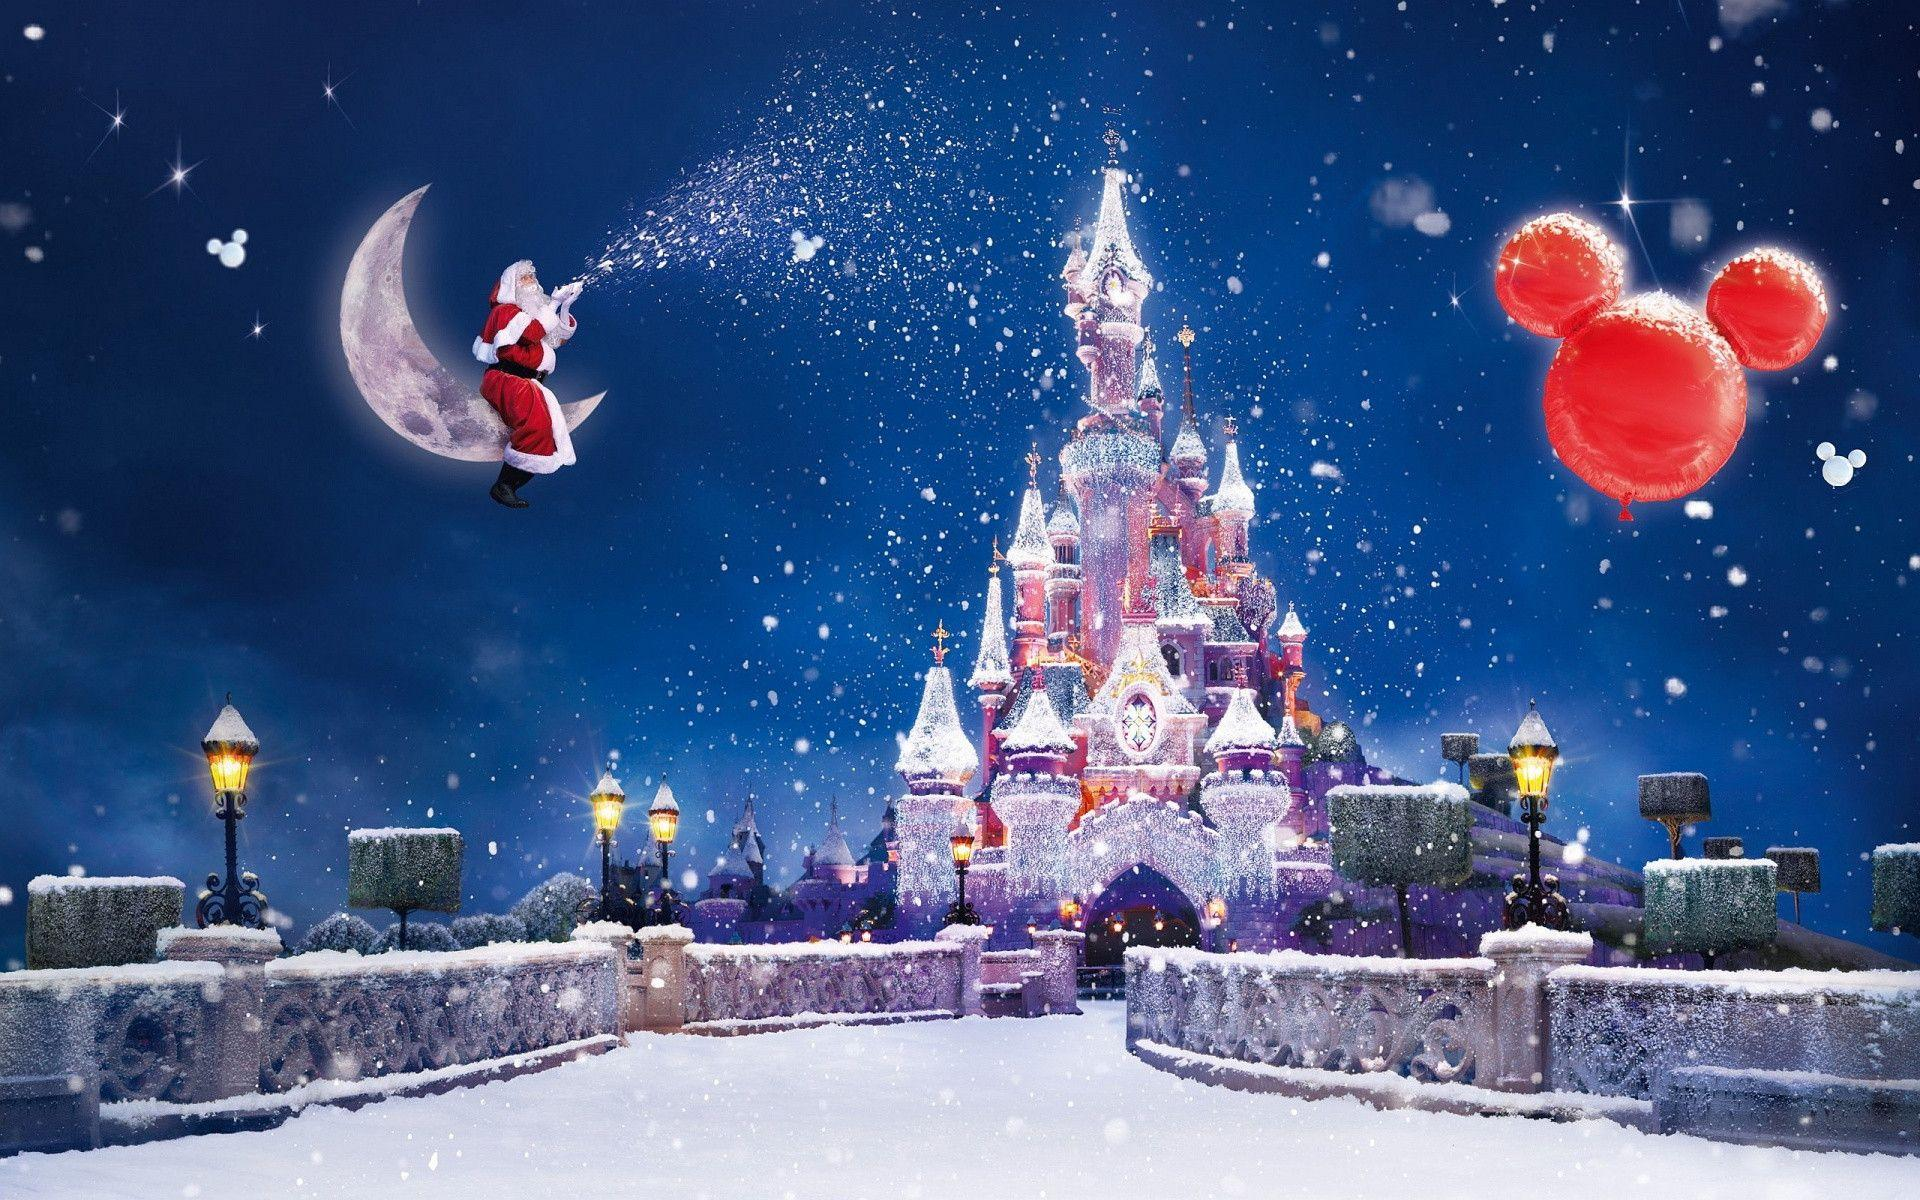 Christmas Disney Wallpaper Hd : Disney christmas backgrounds wallpaper cave